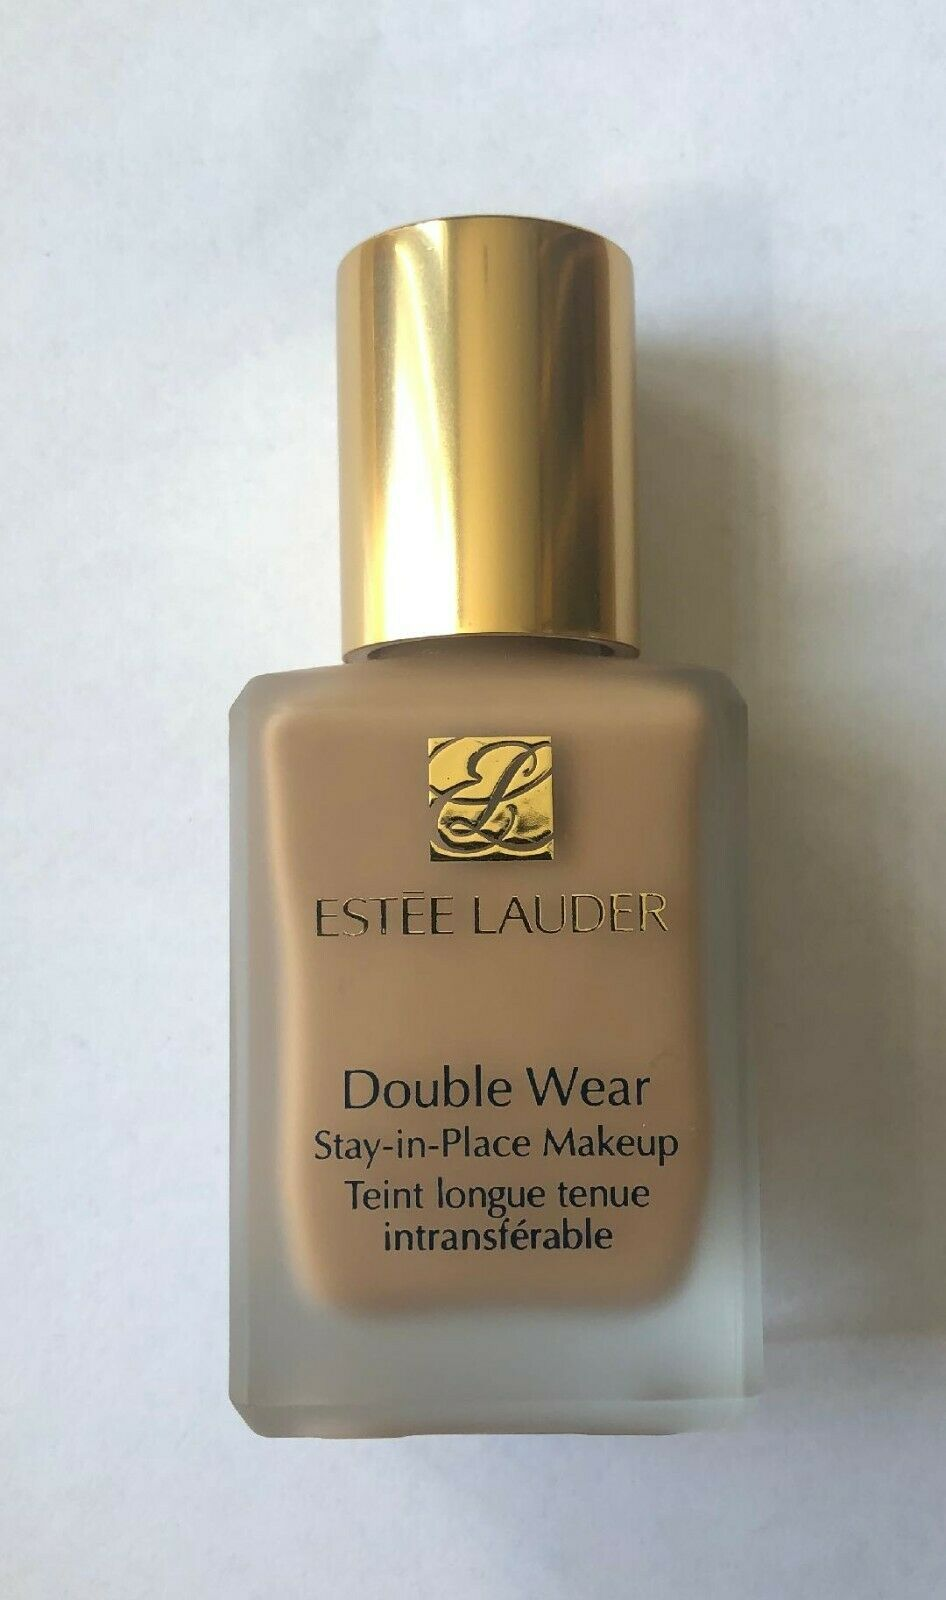 Primary image for Estee Lauder Double Wear Stay-in-Place Makeup ~ 3N1 IVORY BEIGE ~ 30 ml -